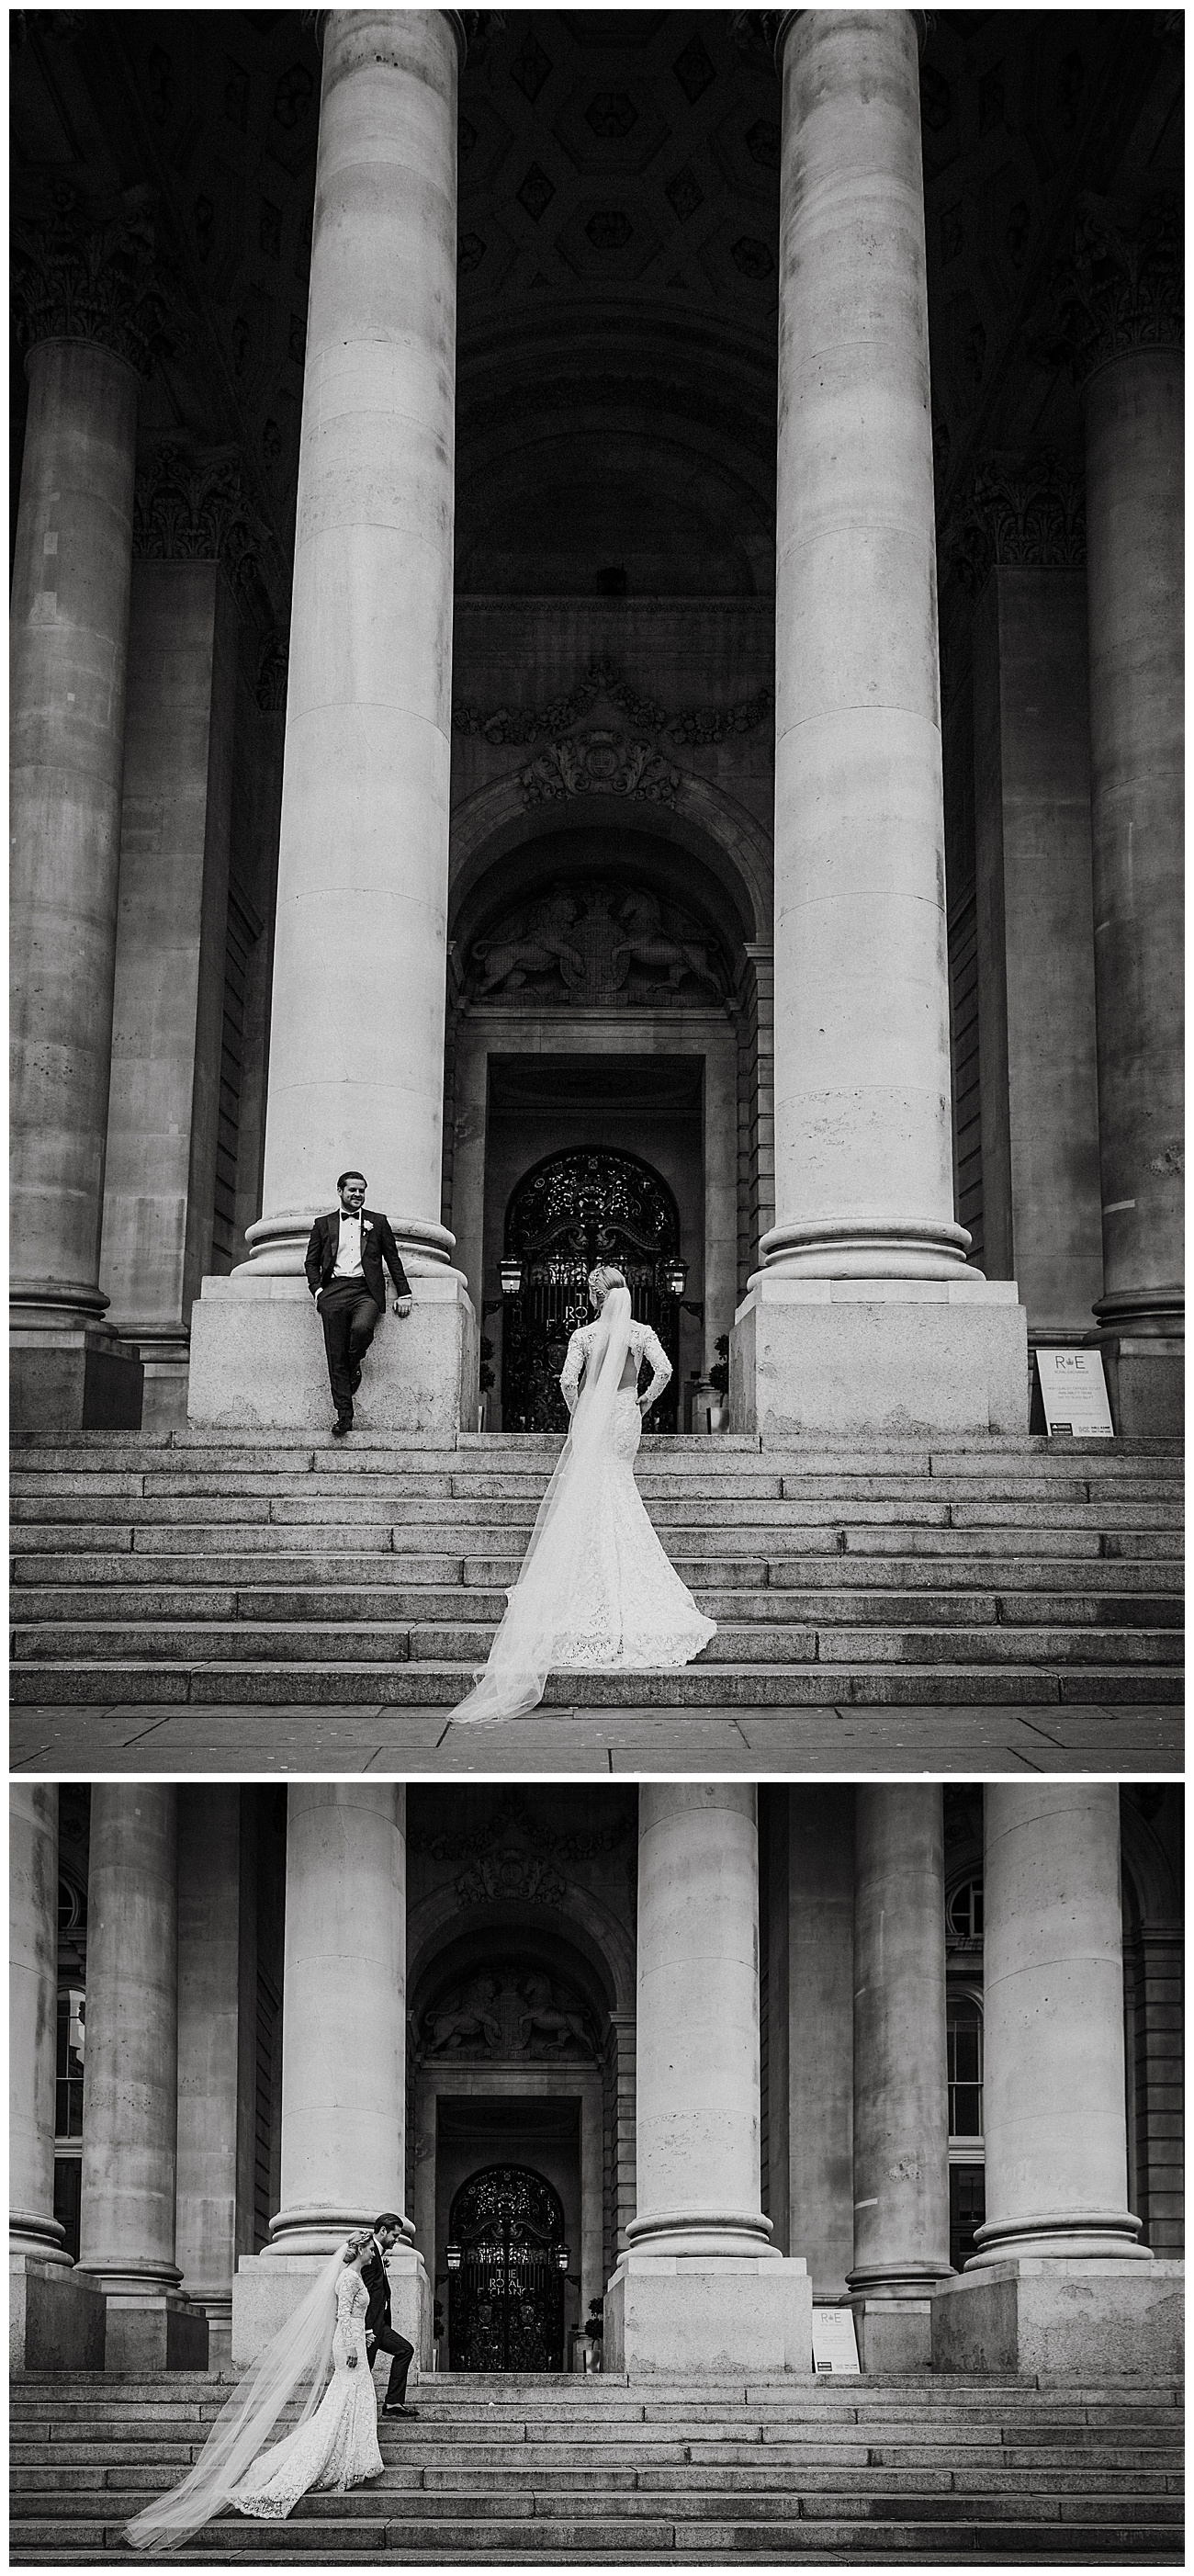 The bride and groom pose in a black and white image on the steps of the Royal exchange in London